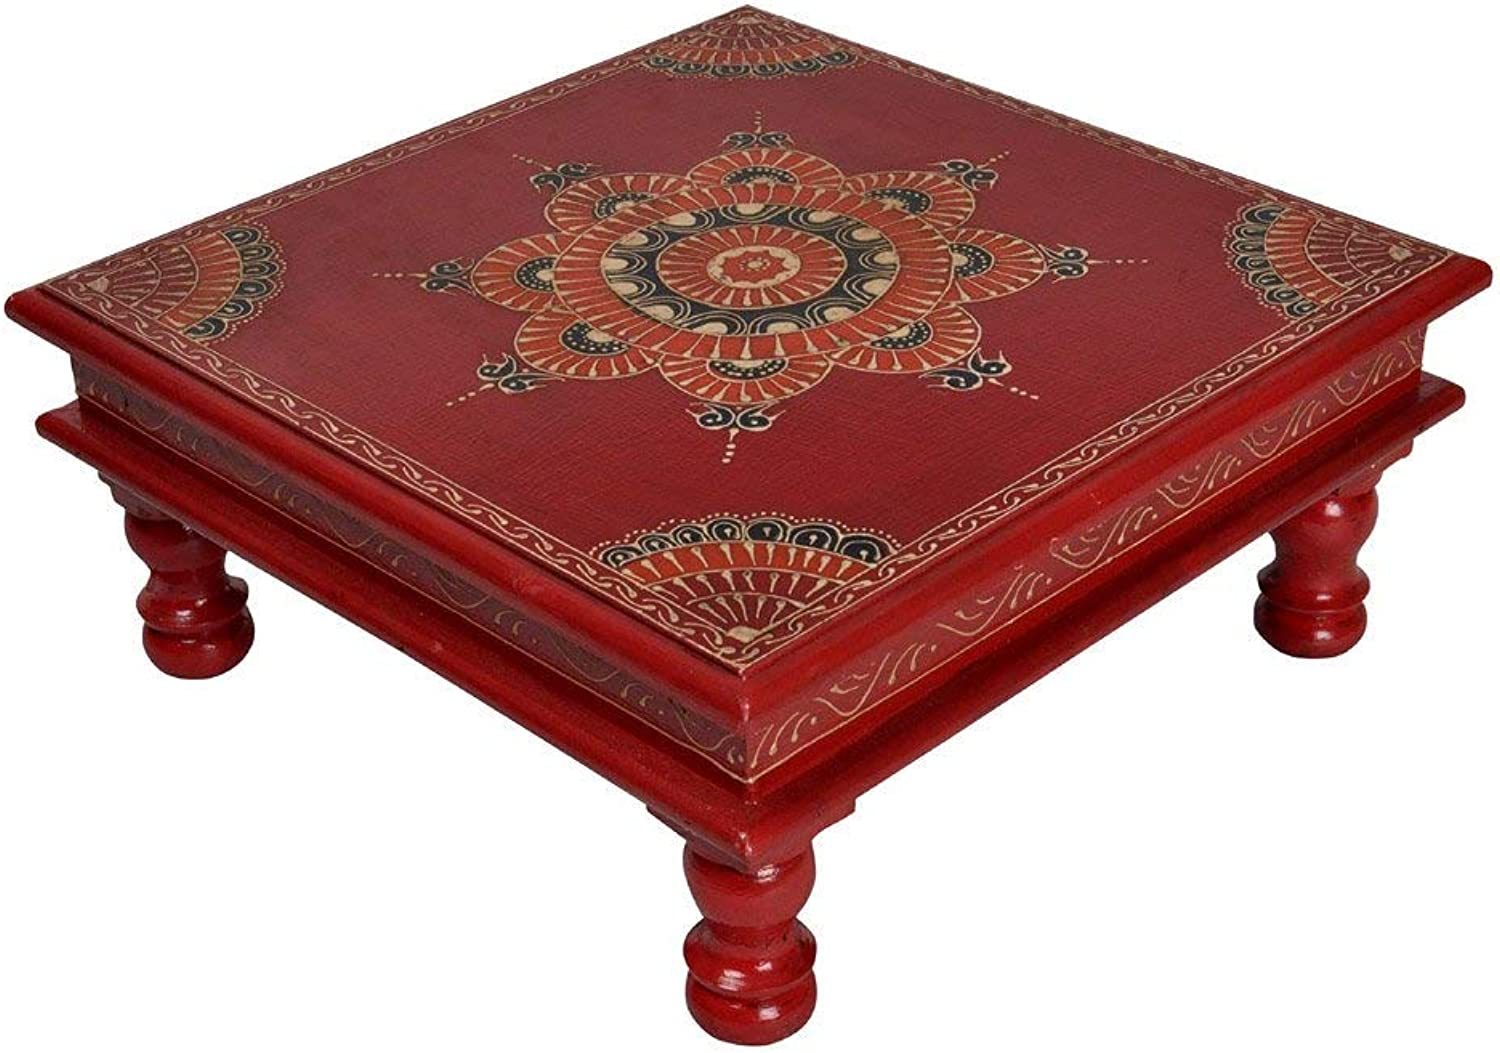 Lalhaveli Square Decorative Stool End Red Tables for Housewarming Gift 13 X 13 X 5.5 Inches